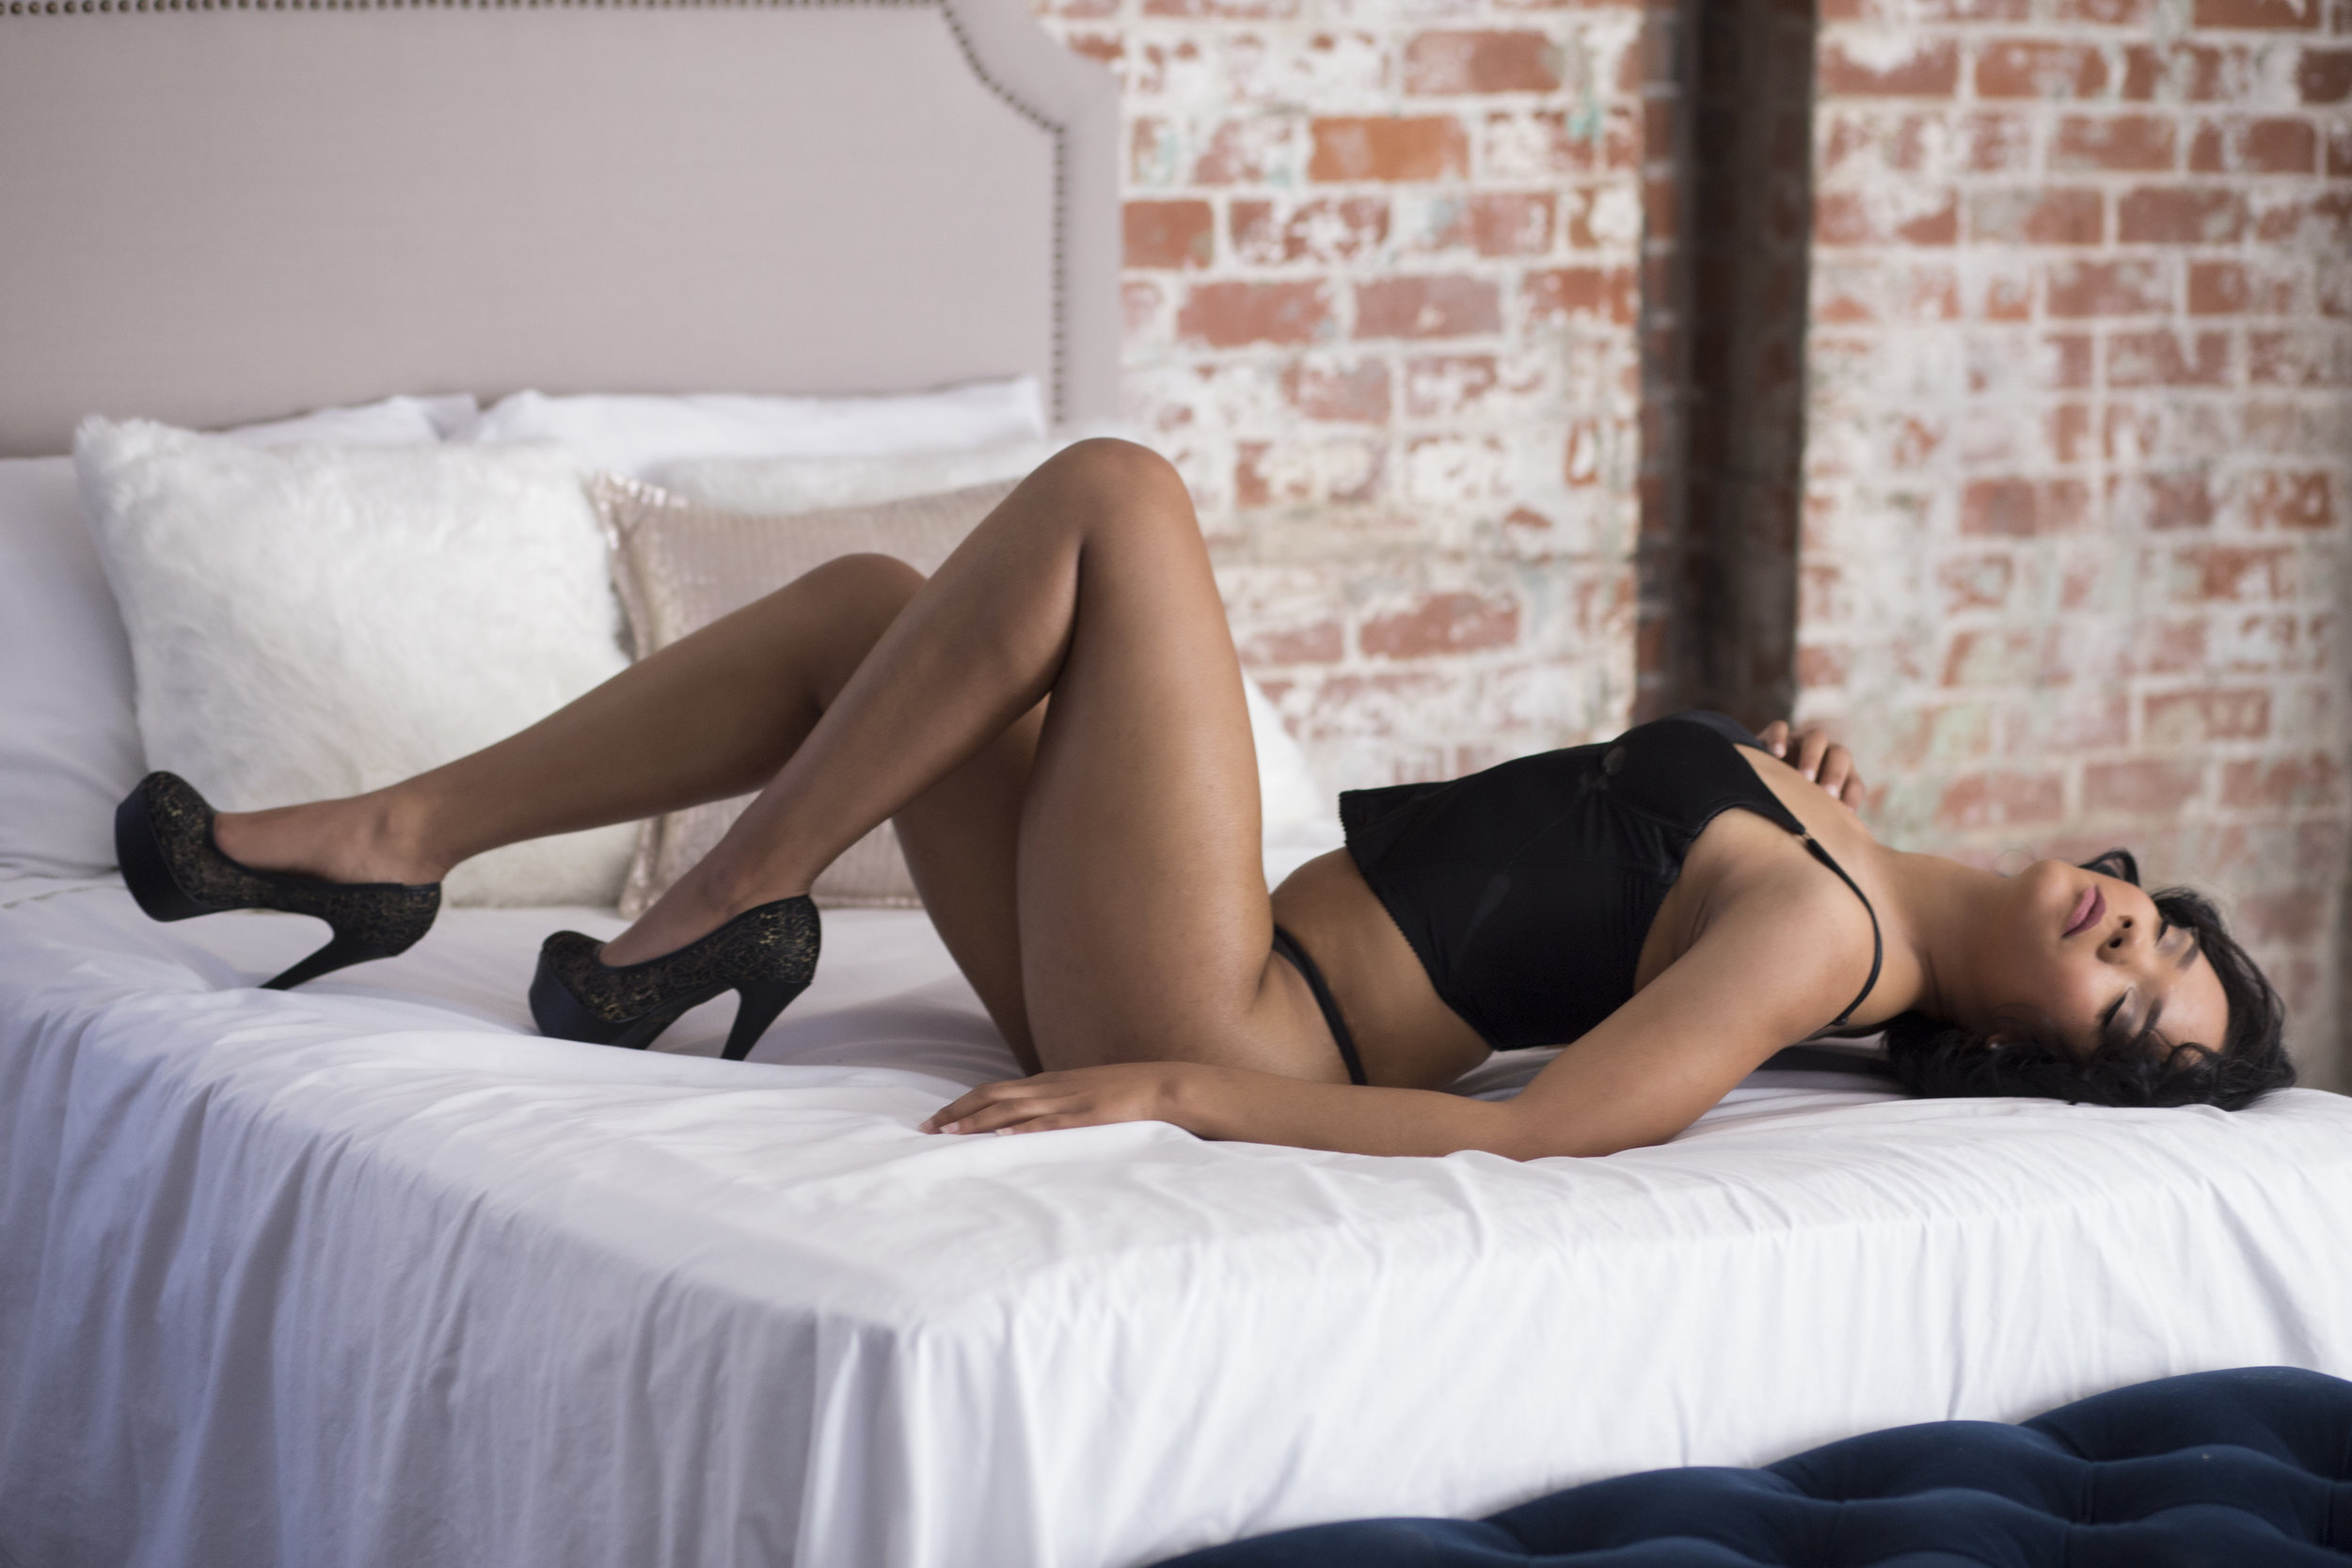 casual boudoir, modest sexy pictures, intimate photos, boudoir columbus, ohio sexy photos, pictures in your underwear, in my calvins, sensual photos, columbus boudoir photography, boudoir photographers columbus, downtown columbus boudoir, glamour photographer